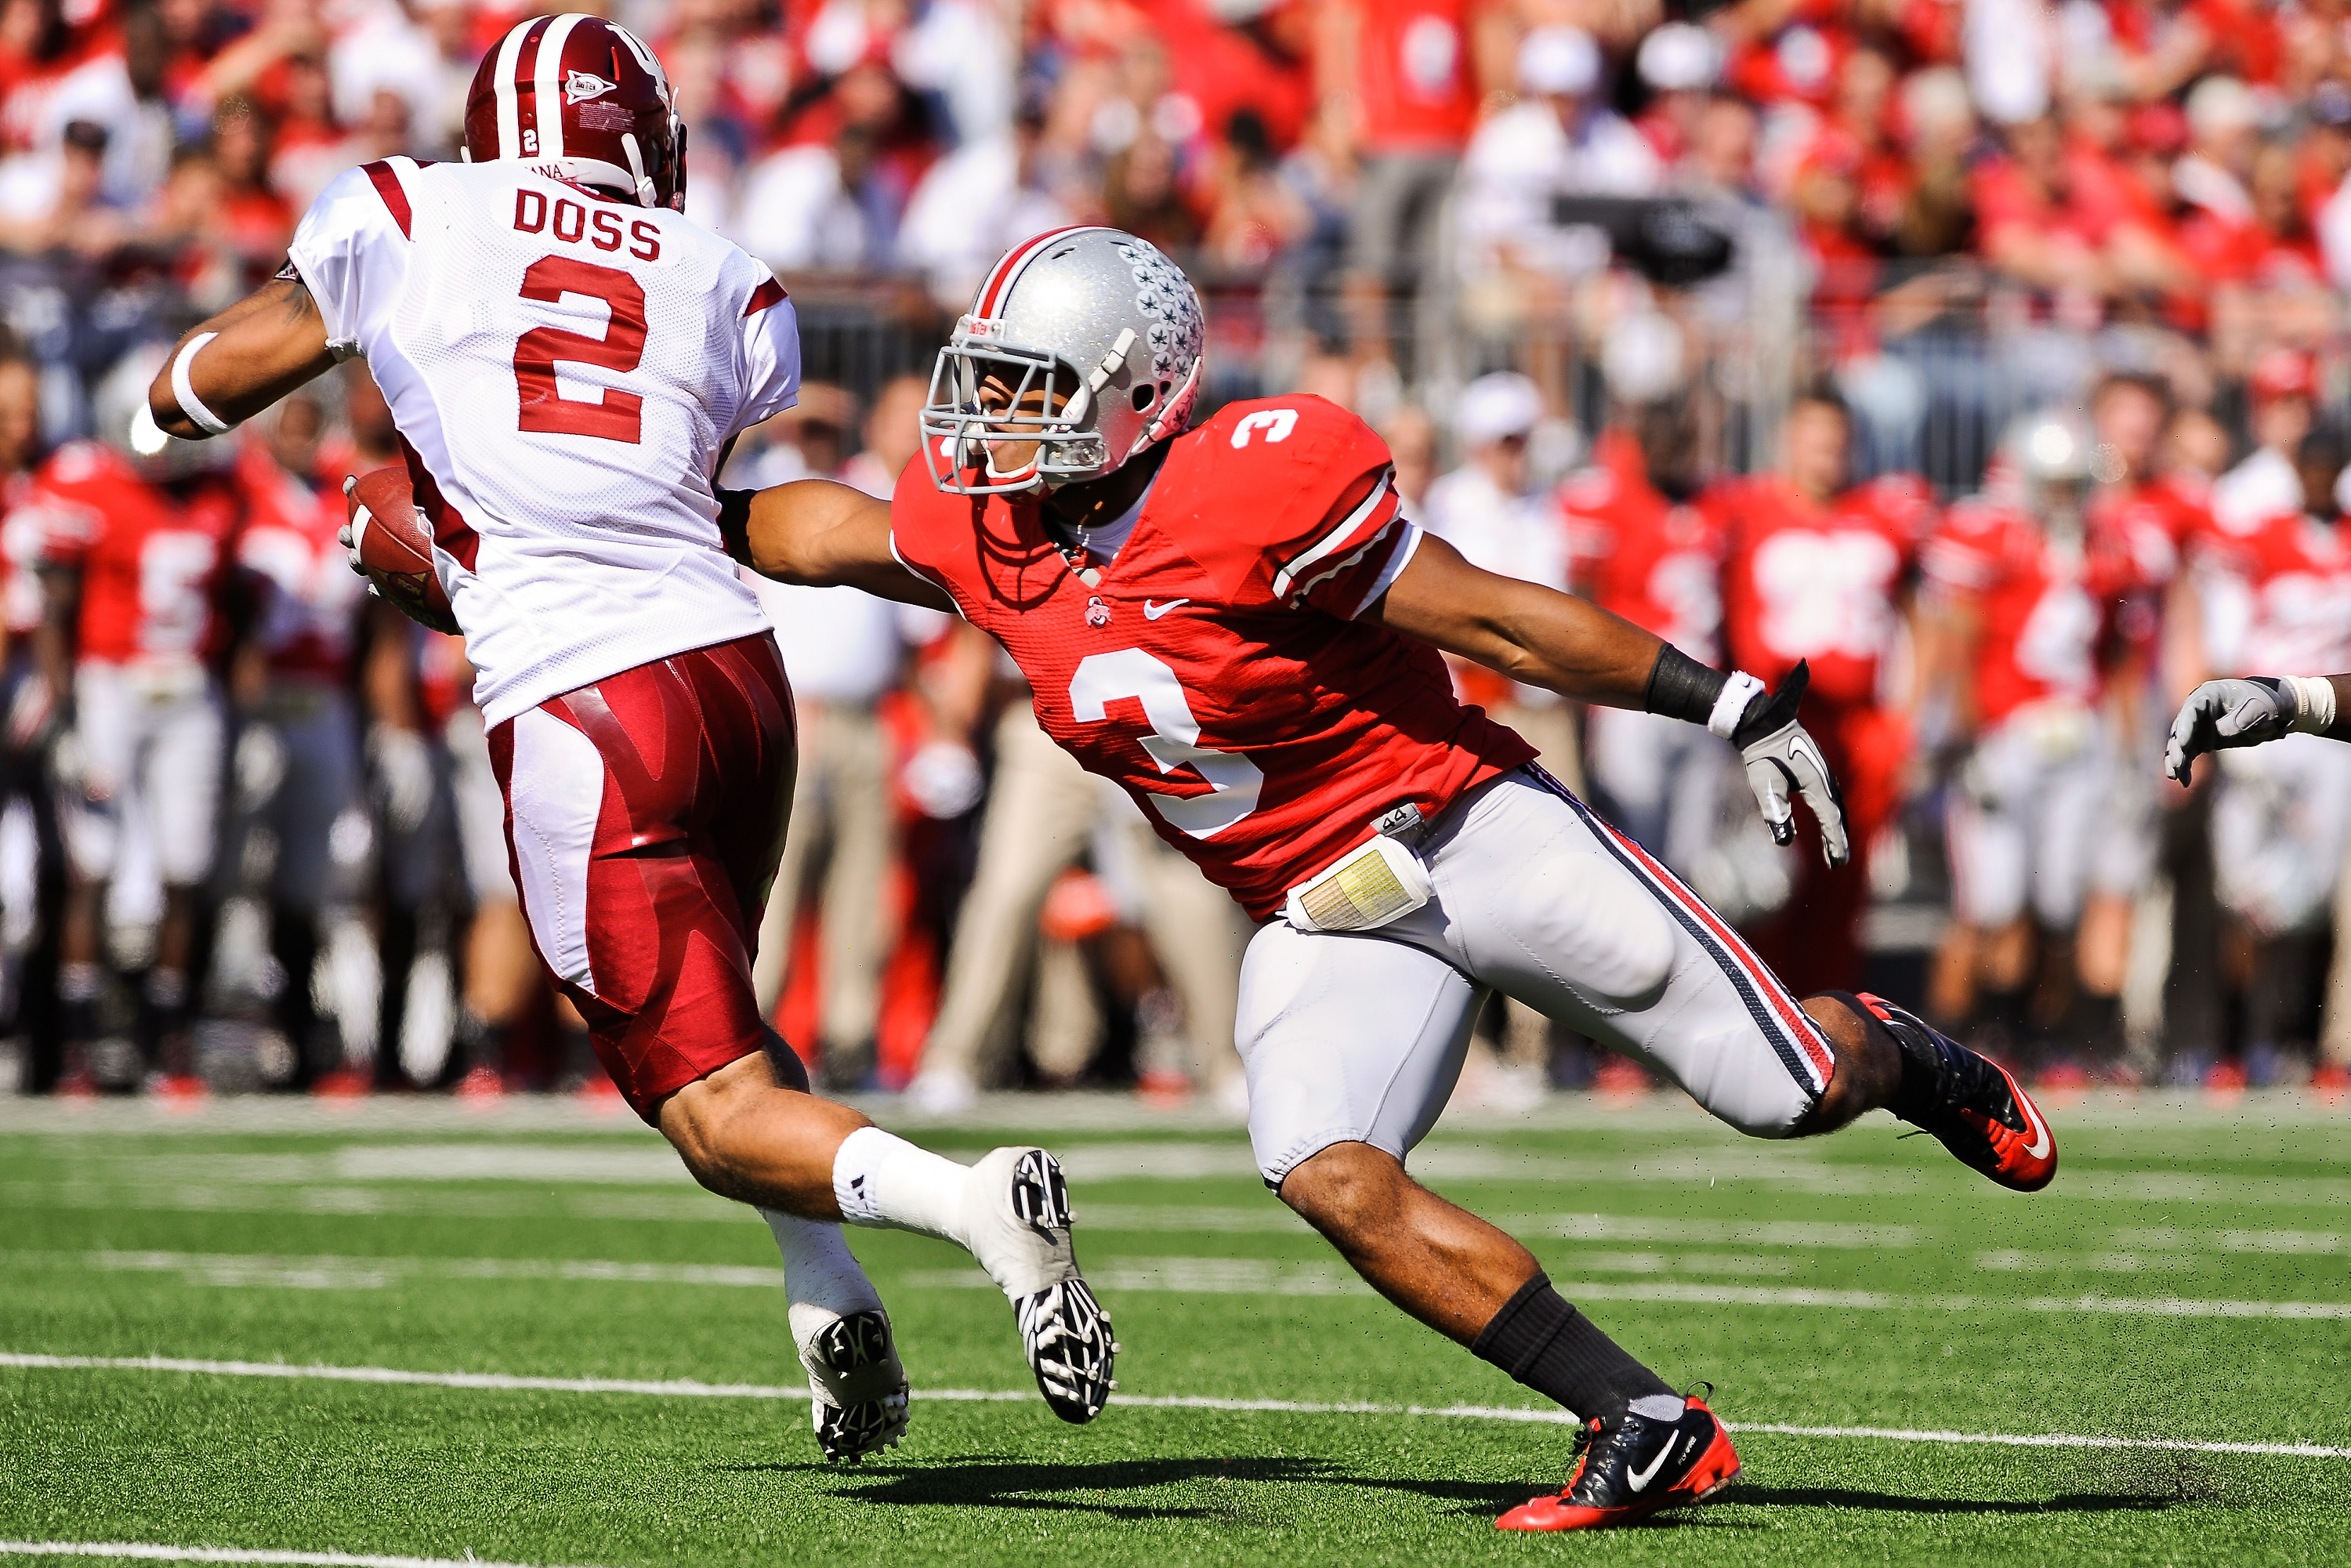 COLUMBUS, OH - OCTOBER 9:  Brandon Saine #3 of the Ohio State Buckeyes attempts to make a tackle on Tandon Doss #2 of the Indiana Hoosiers during a kickoff return at Ohio Stadium on October 9, 2010 in Columbus, Ohio.  (Photo by Jamie Sabau/Getty Images)